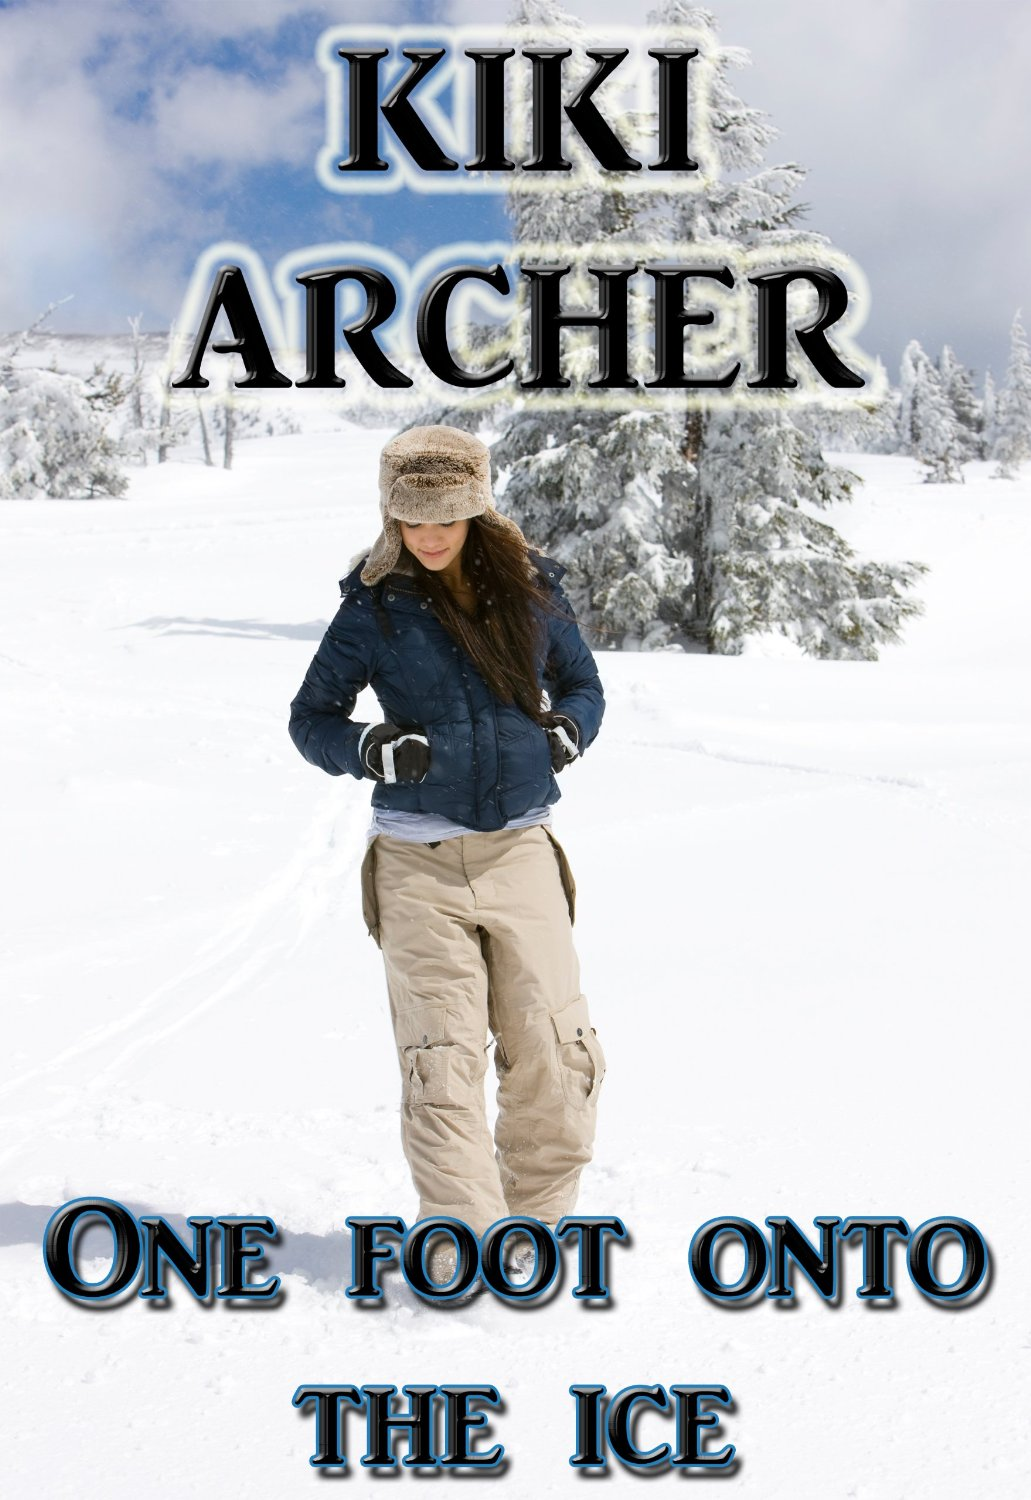 Kiki Archer - One Foot Onto The Ice (Book Trailer)